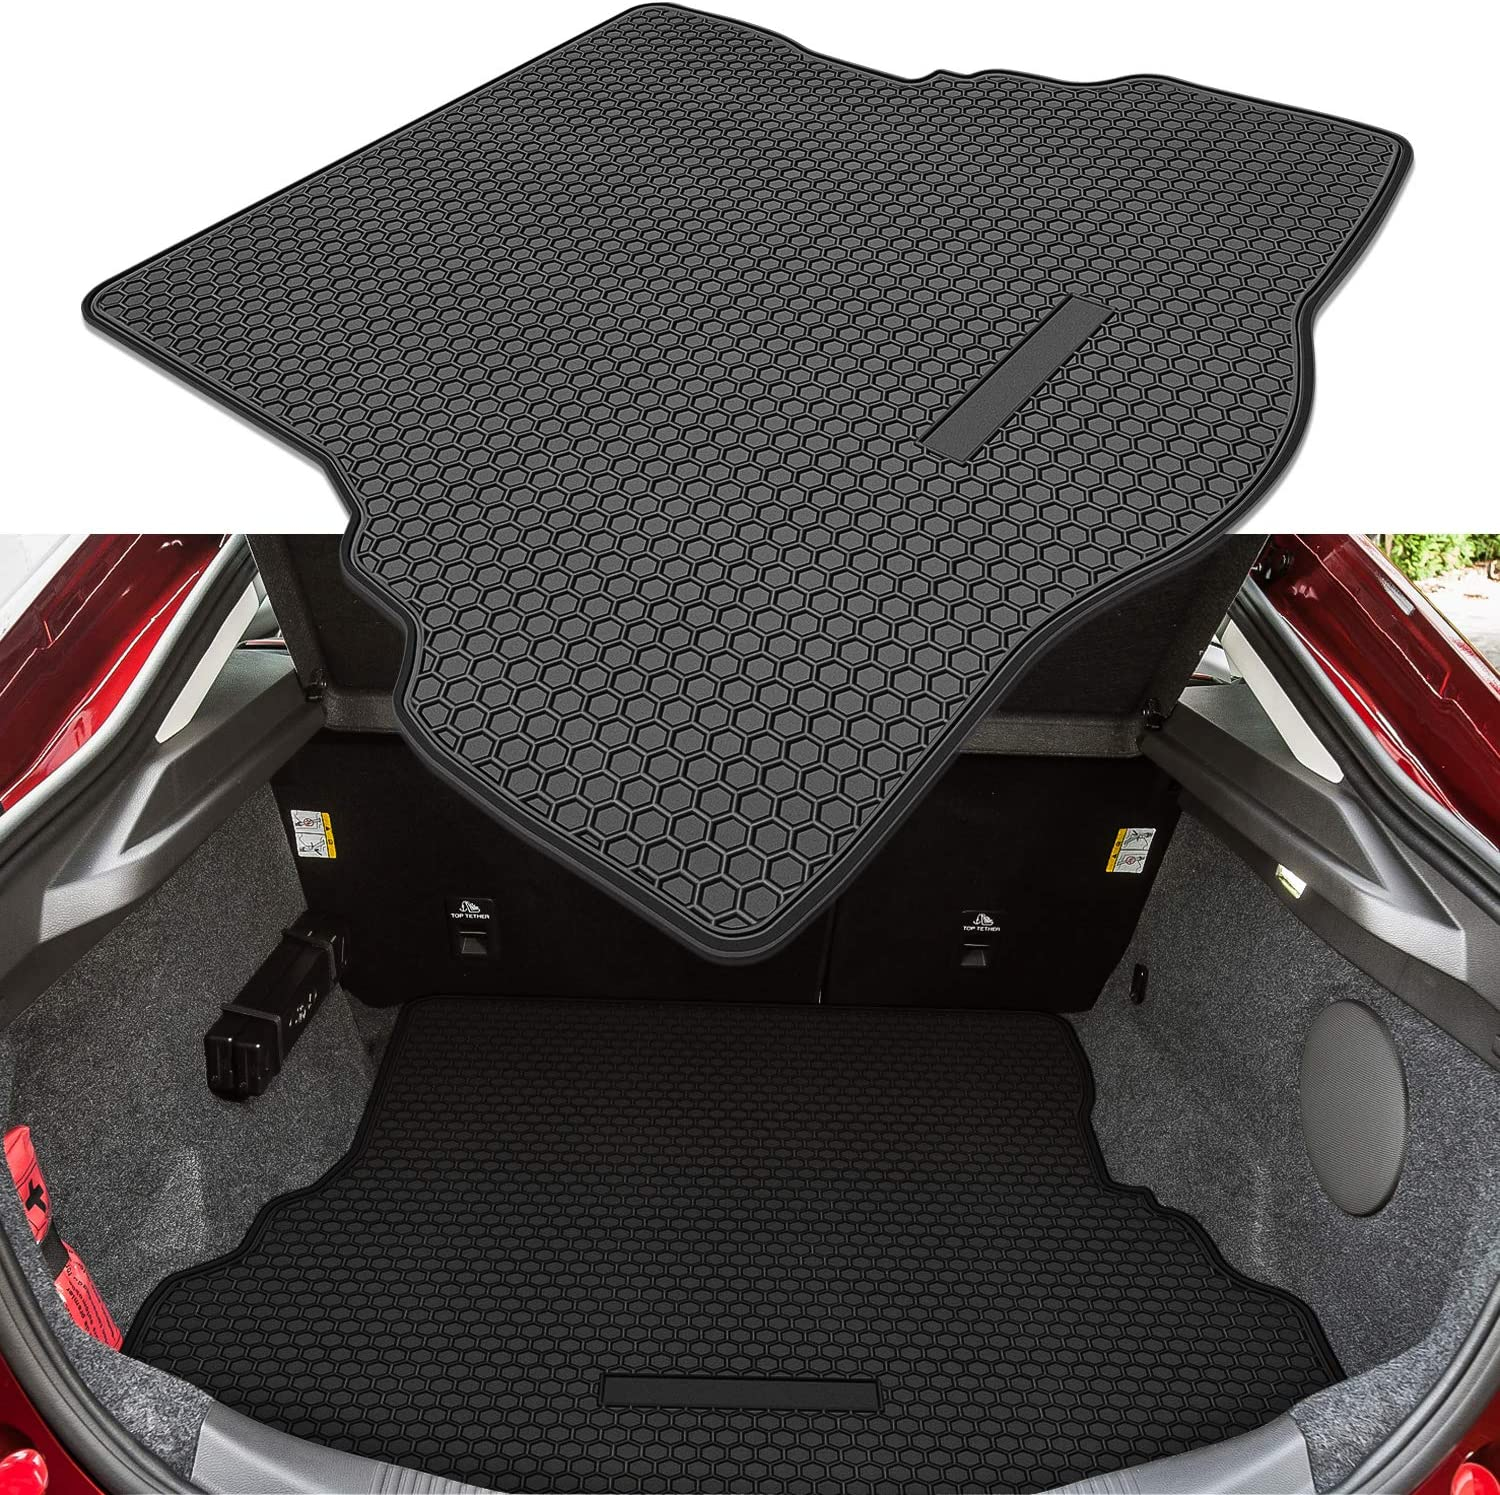 Custom Fit Bonbo Trunk Cargo Liner Mat for Ford Fusion 2013-2020 Premium Environmentally Friendly Rubber Heavy Duty All Weather Guard Odorless